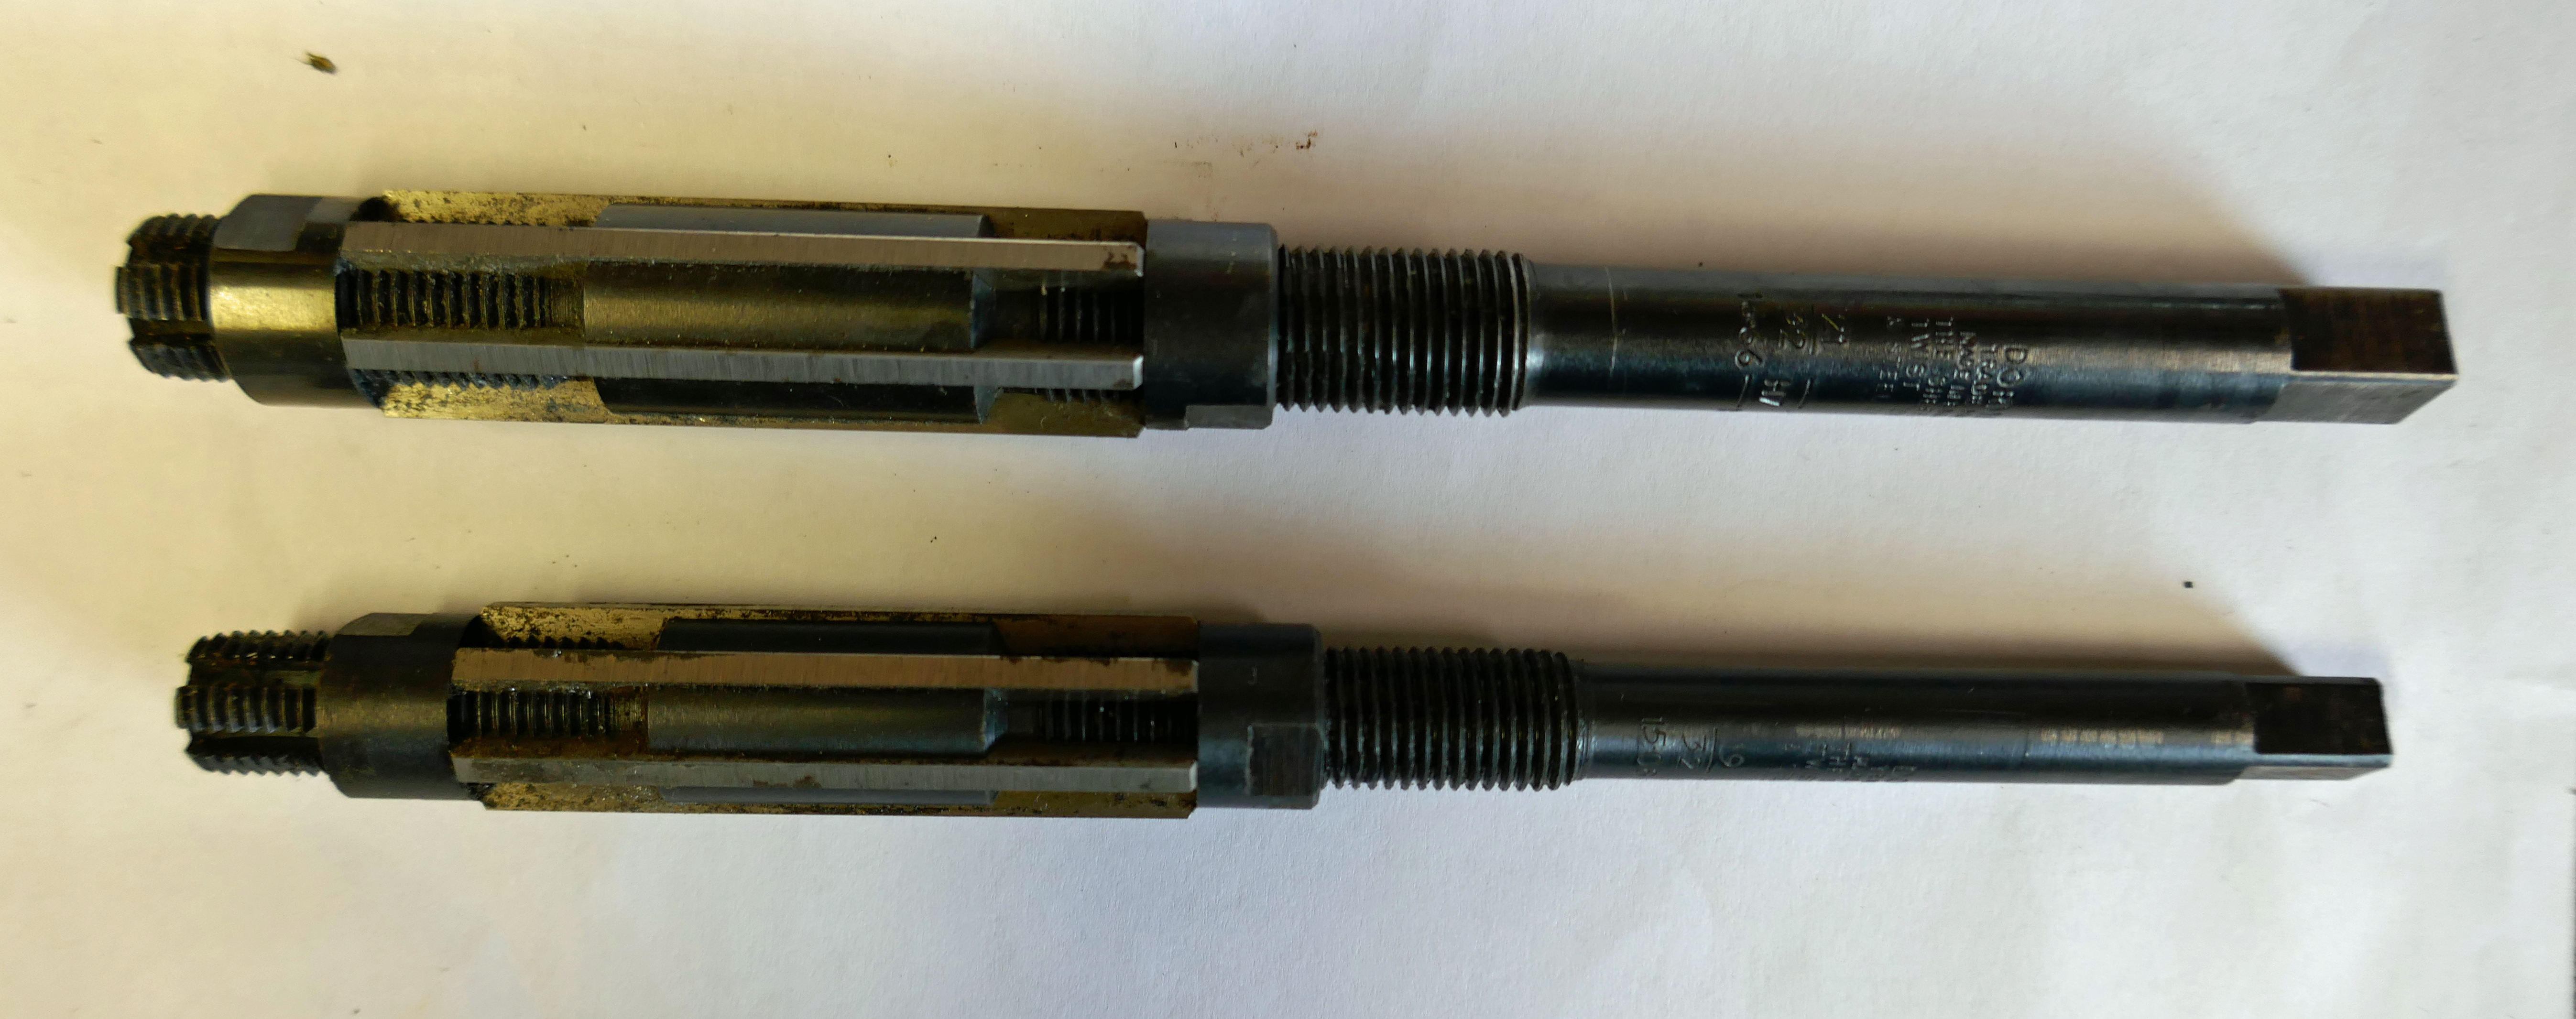 ADJUSTABLE PARALLEL REAMERS_edited-1